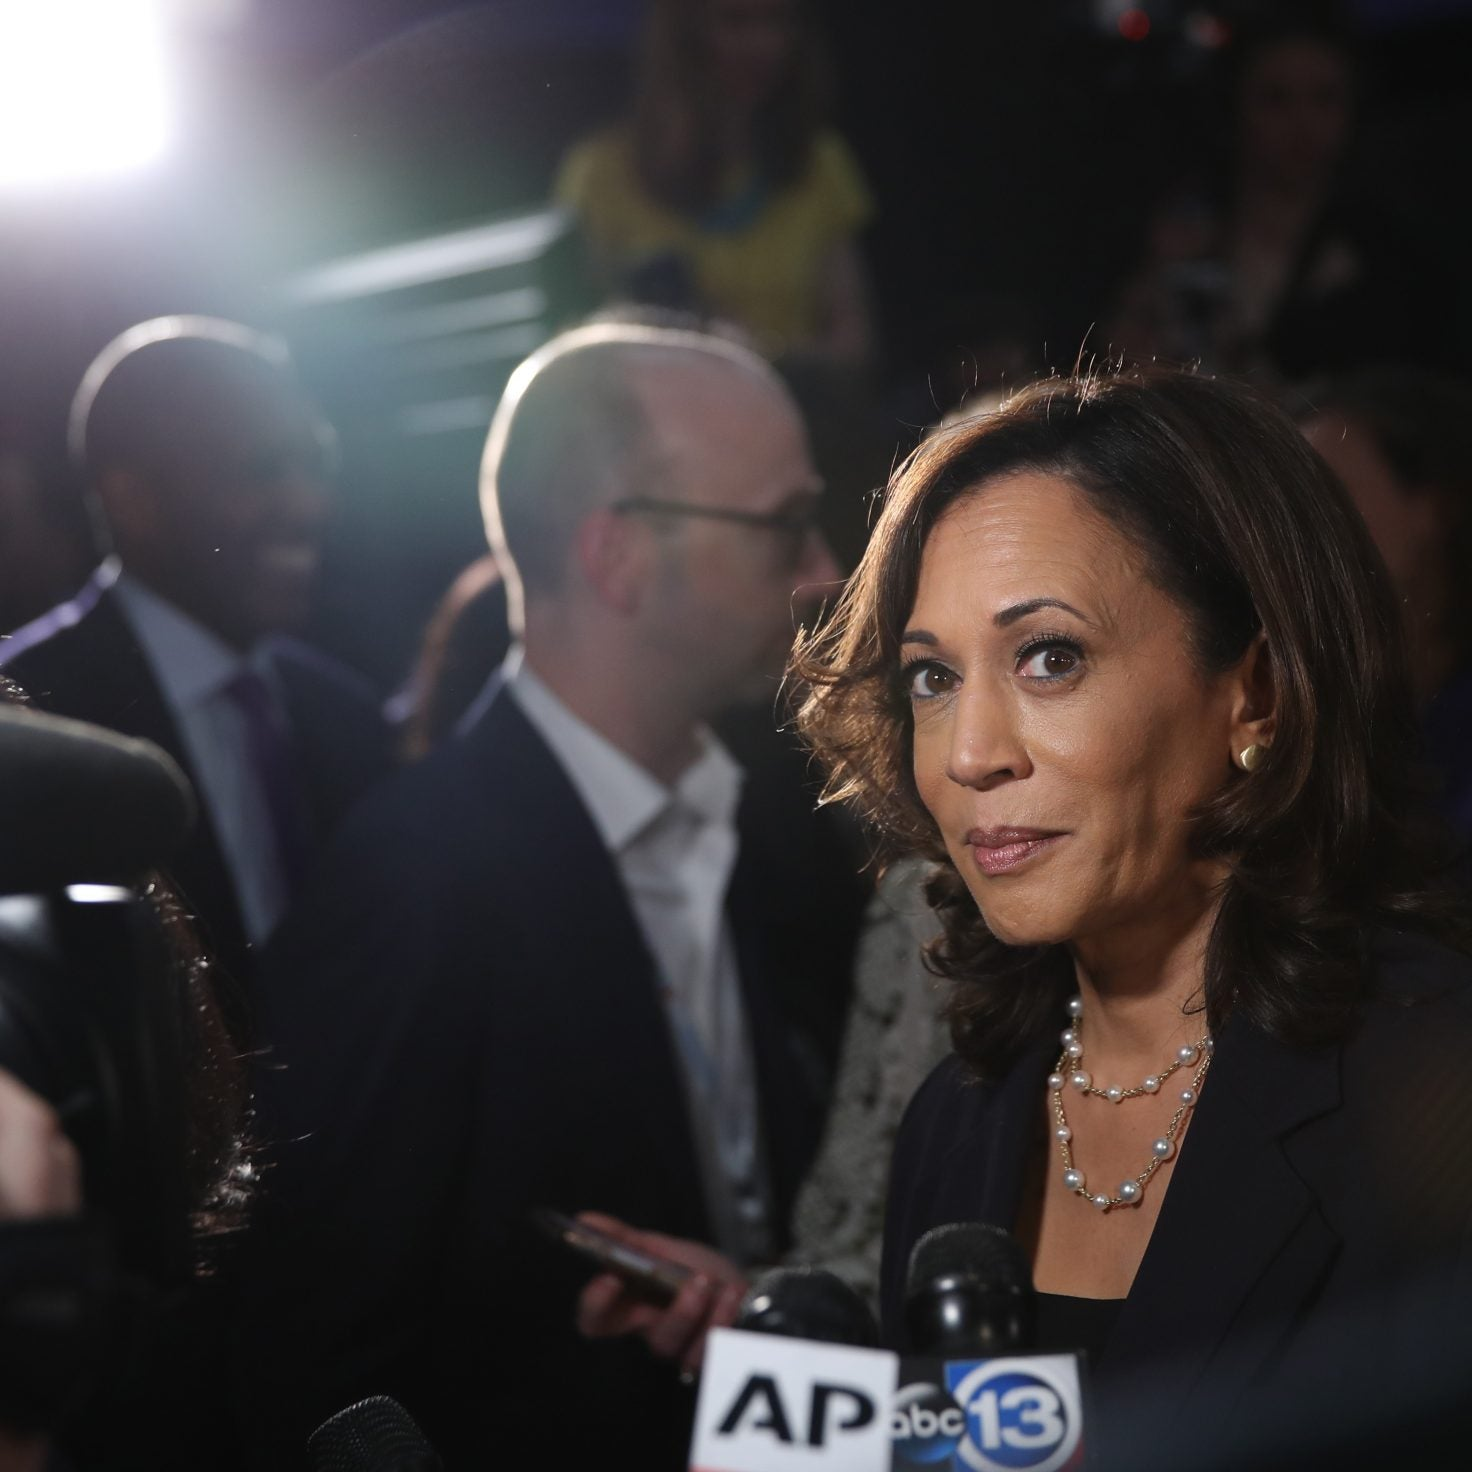 Sen. Kamala Harris, Rep. Alexandria Ocasio-Cortez Introduce Bill To Help People With Criminal Records Get Housing